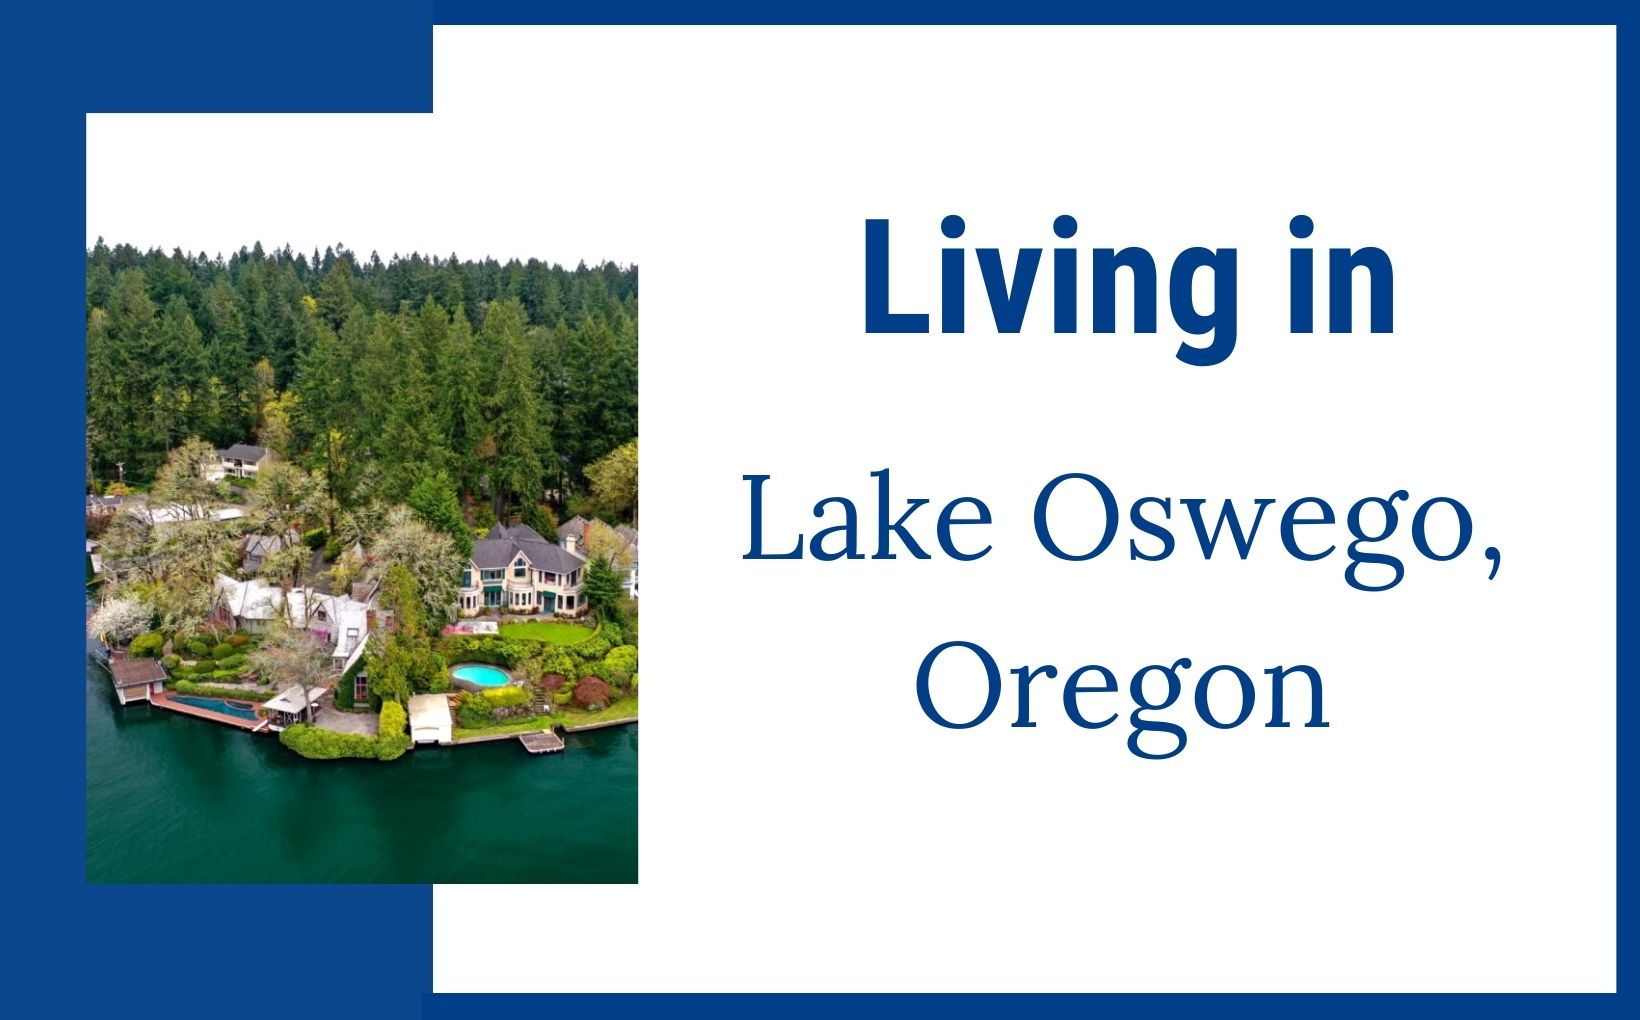 Living in Lake Oswego Oregon feature image